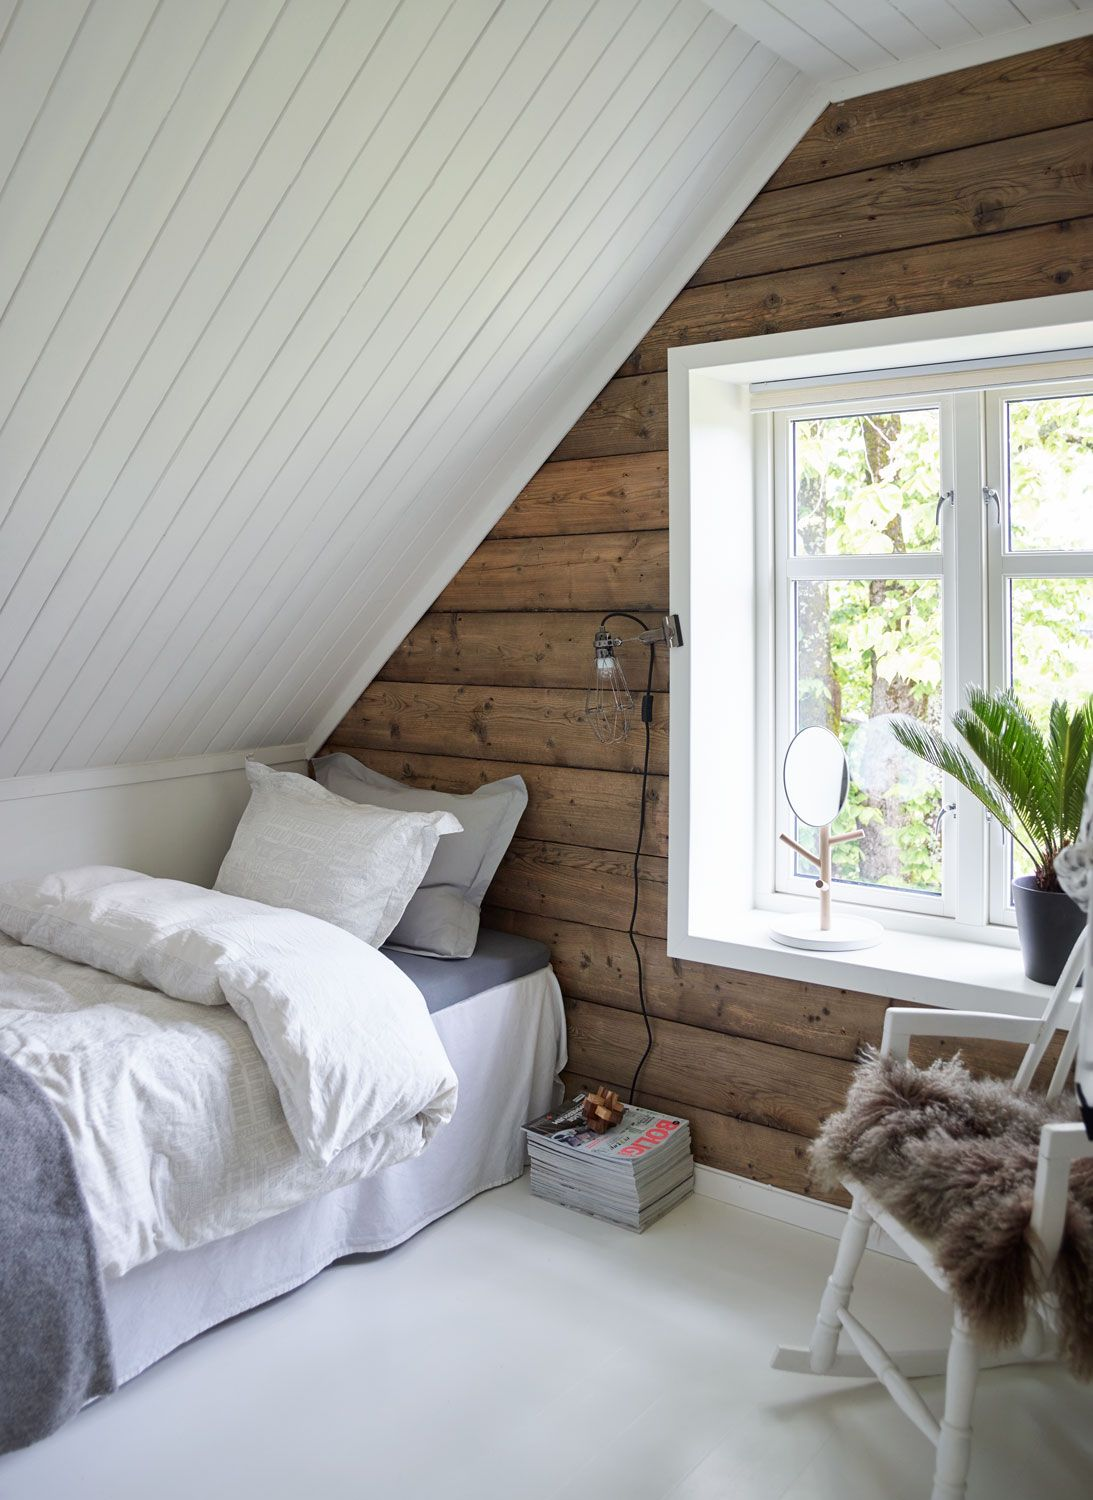 Attic Bedroom Design And Décor Tips Spaces Attic Bedroom Small